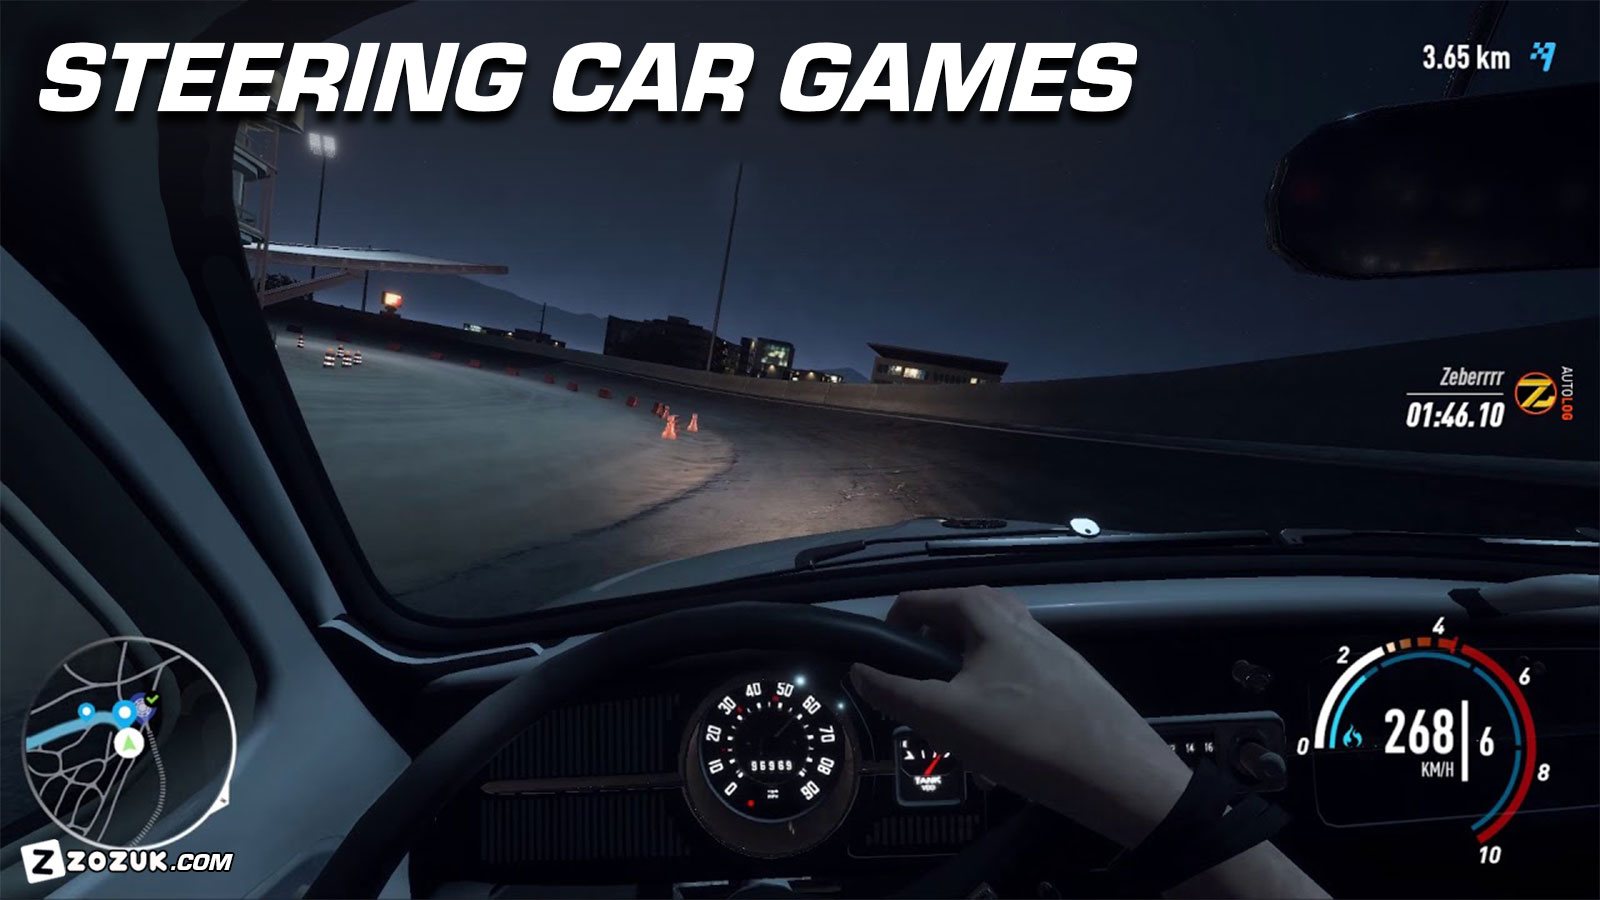 5 Most Amazing Steering Car Games